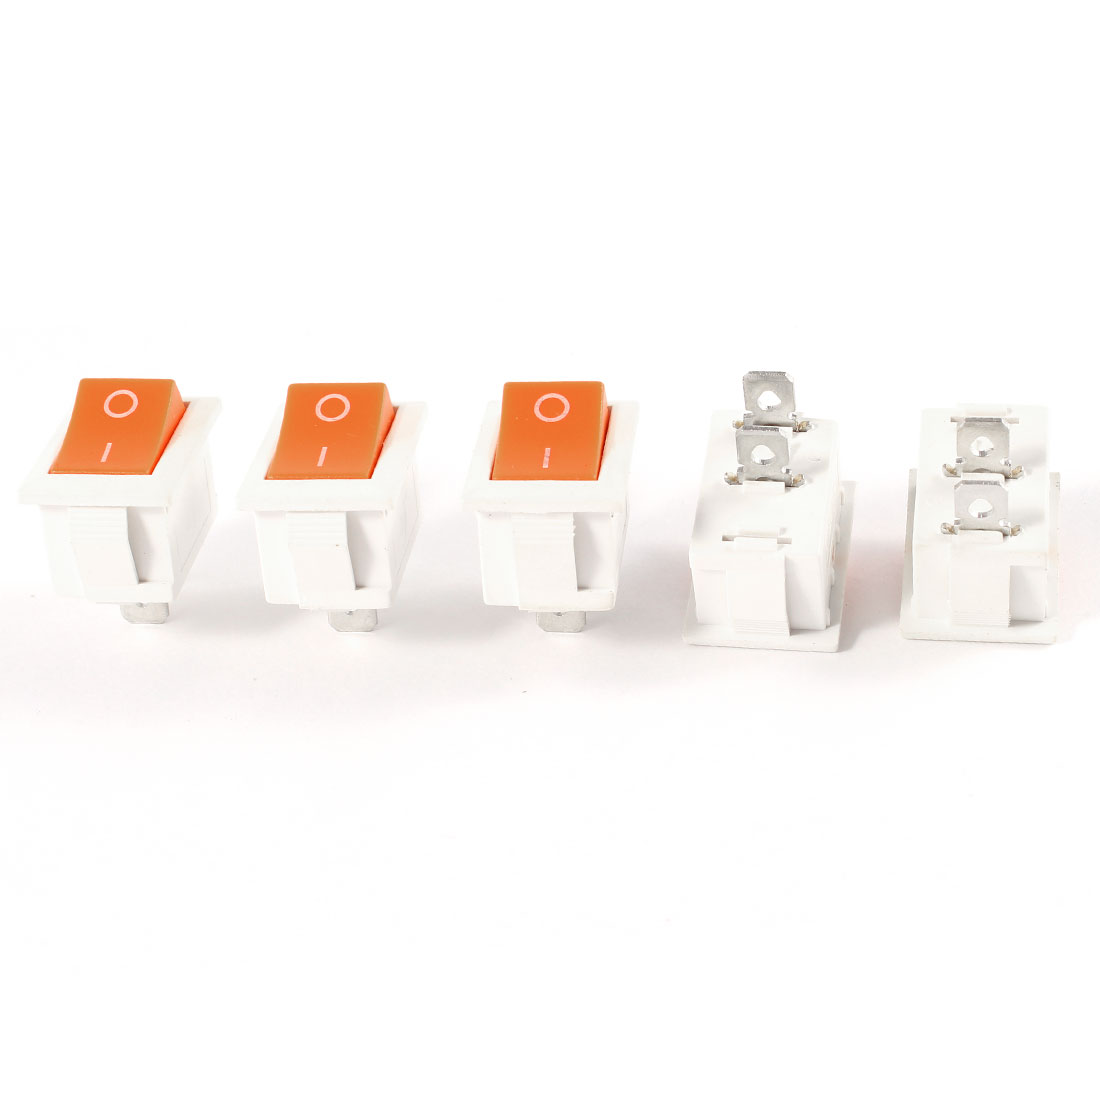 5 Pcs AC 250V/6A 125V/10A ON/OFF 2-Position SPST Snap In Rocker Switch